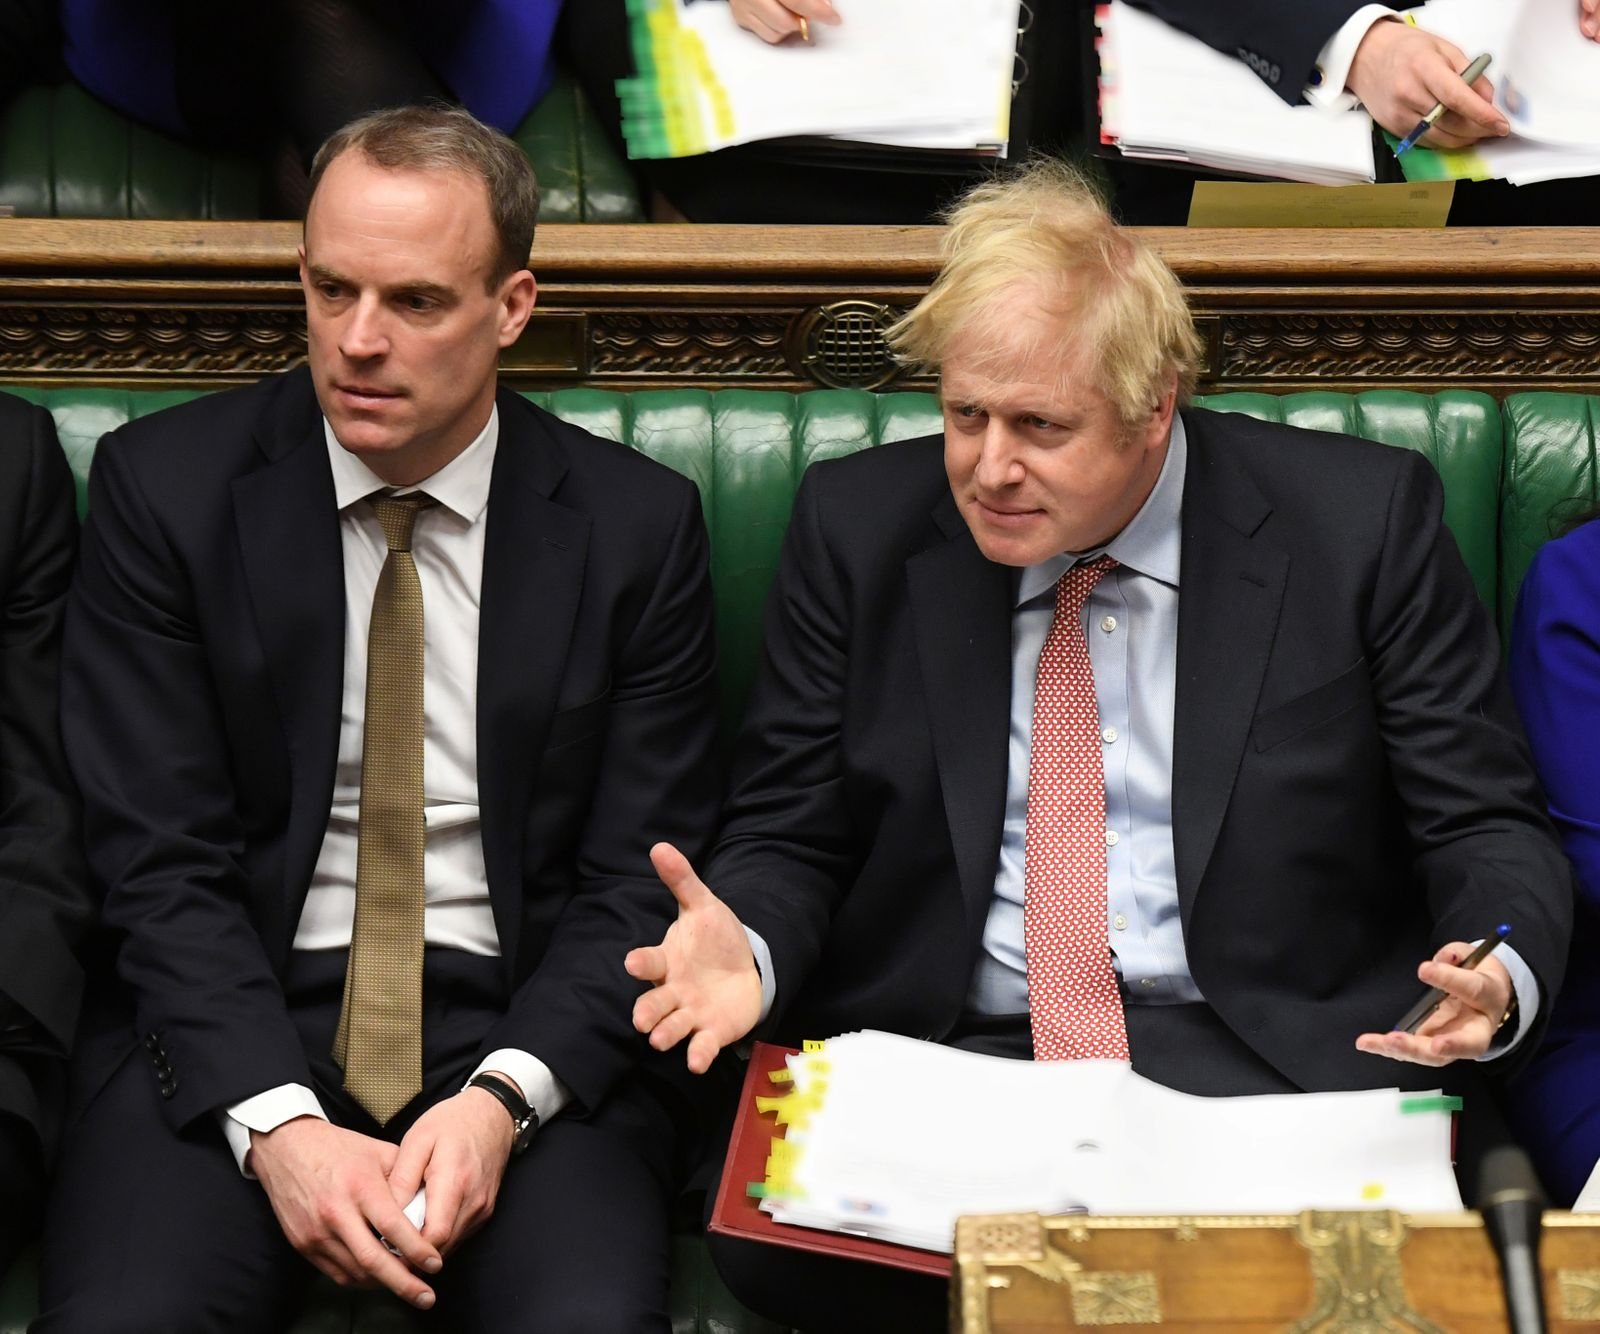 Prime Minister's Questions session in Parliament in London